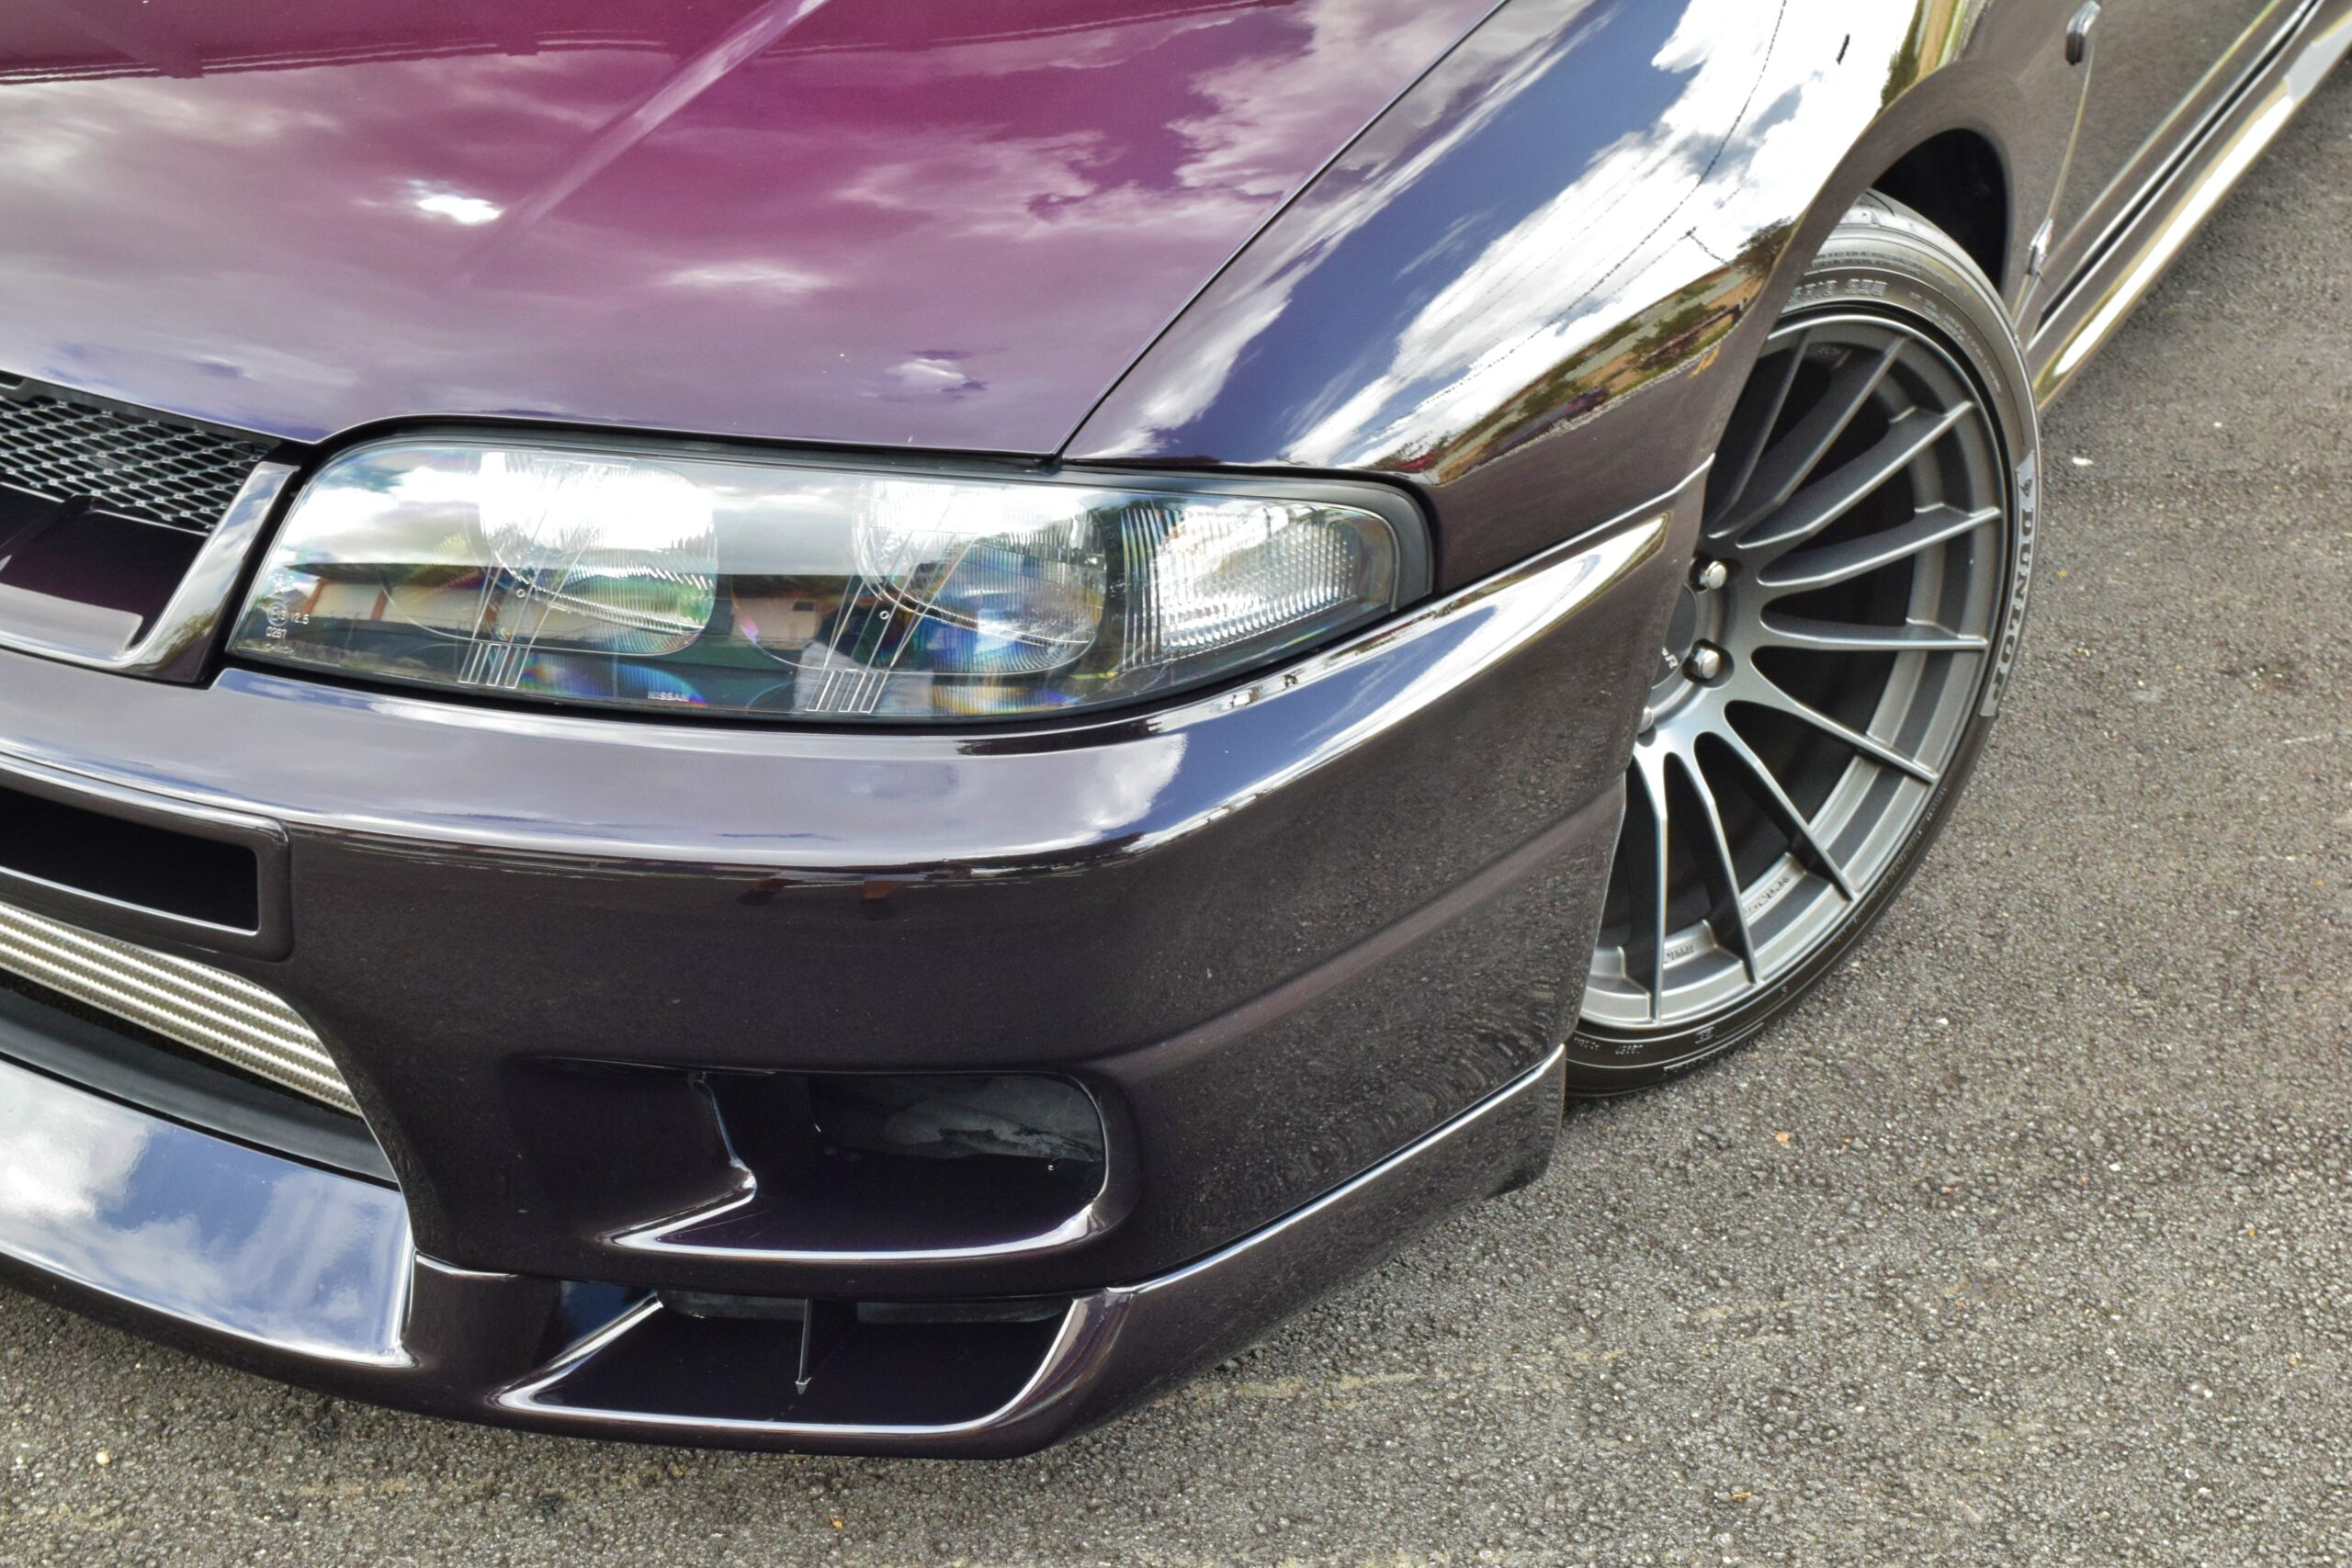 1995 Nissan GT-R R33 SKYLINE Midnight Purple-Single Turbo-550 AWHP -Only 37K Miles- SHOW CAR – Fully Sorted